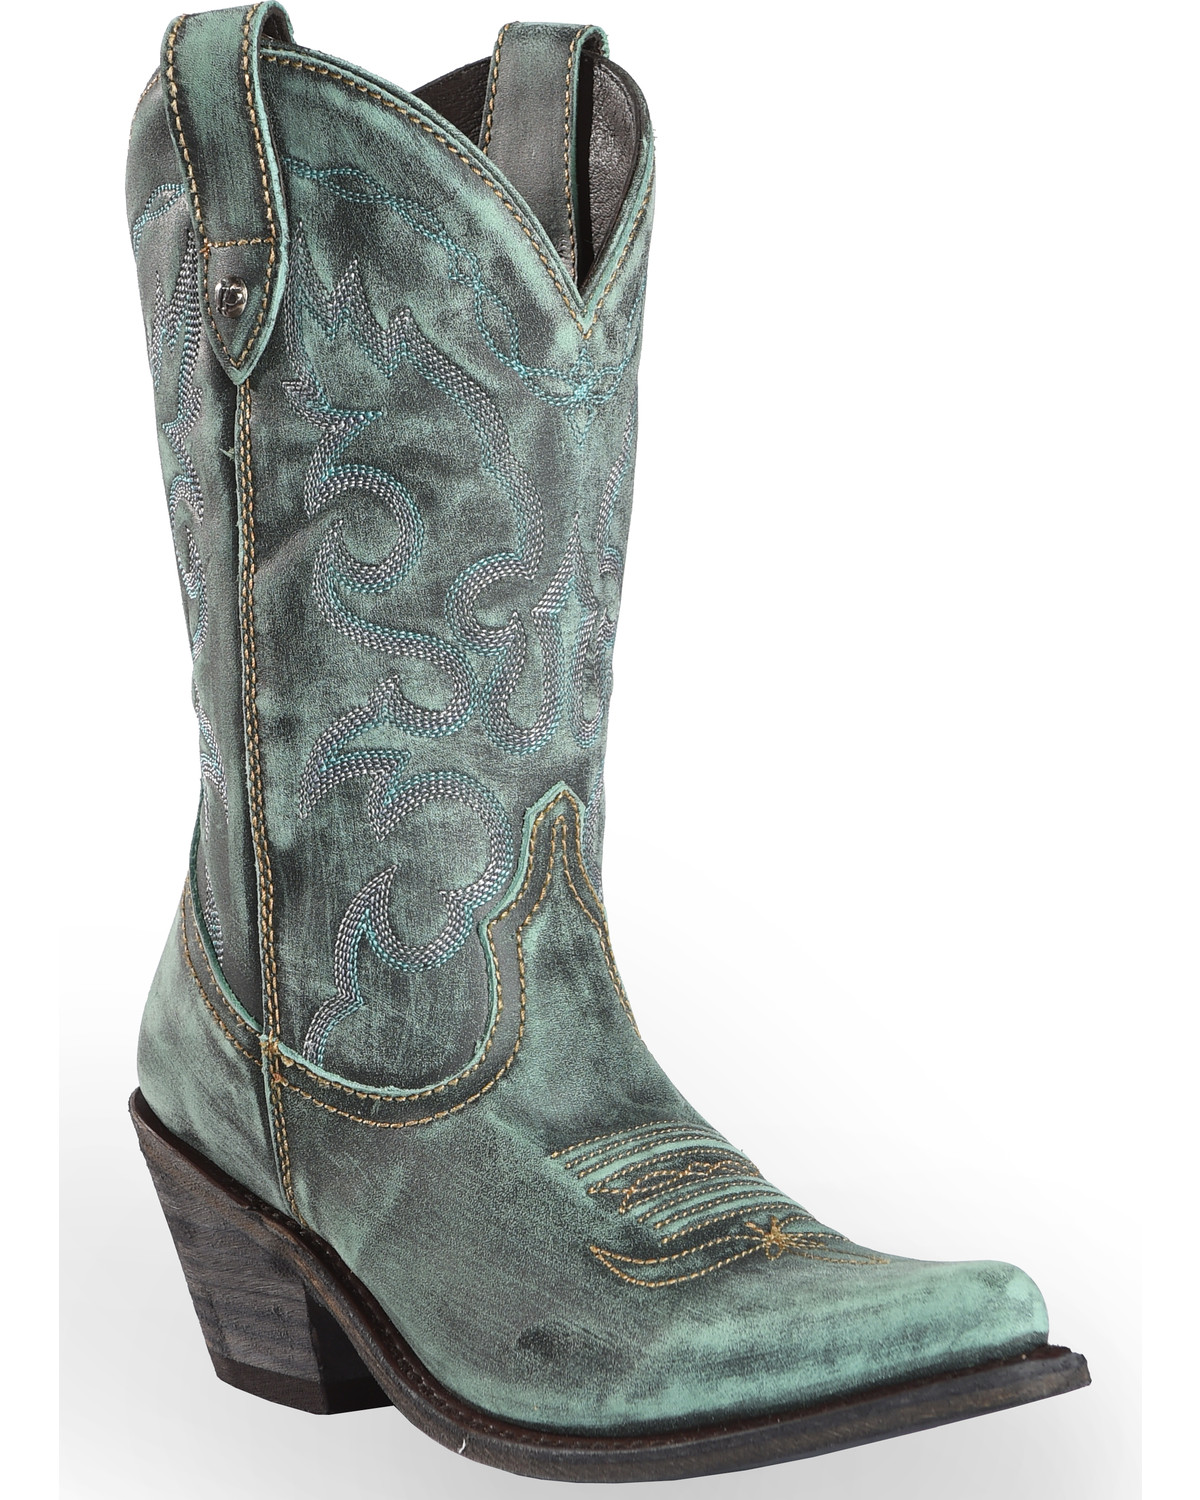 b0021af26e81 Liberty Black Women s Vintage Azul Western Cowgirl Boots - Pointed Toe